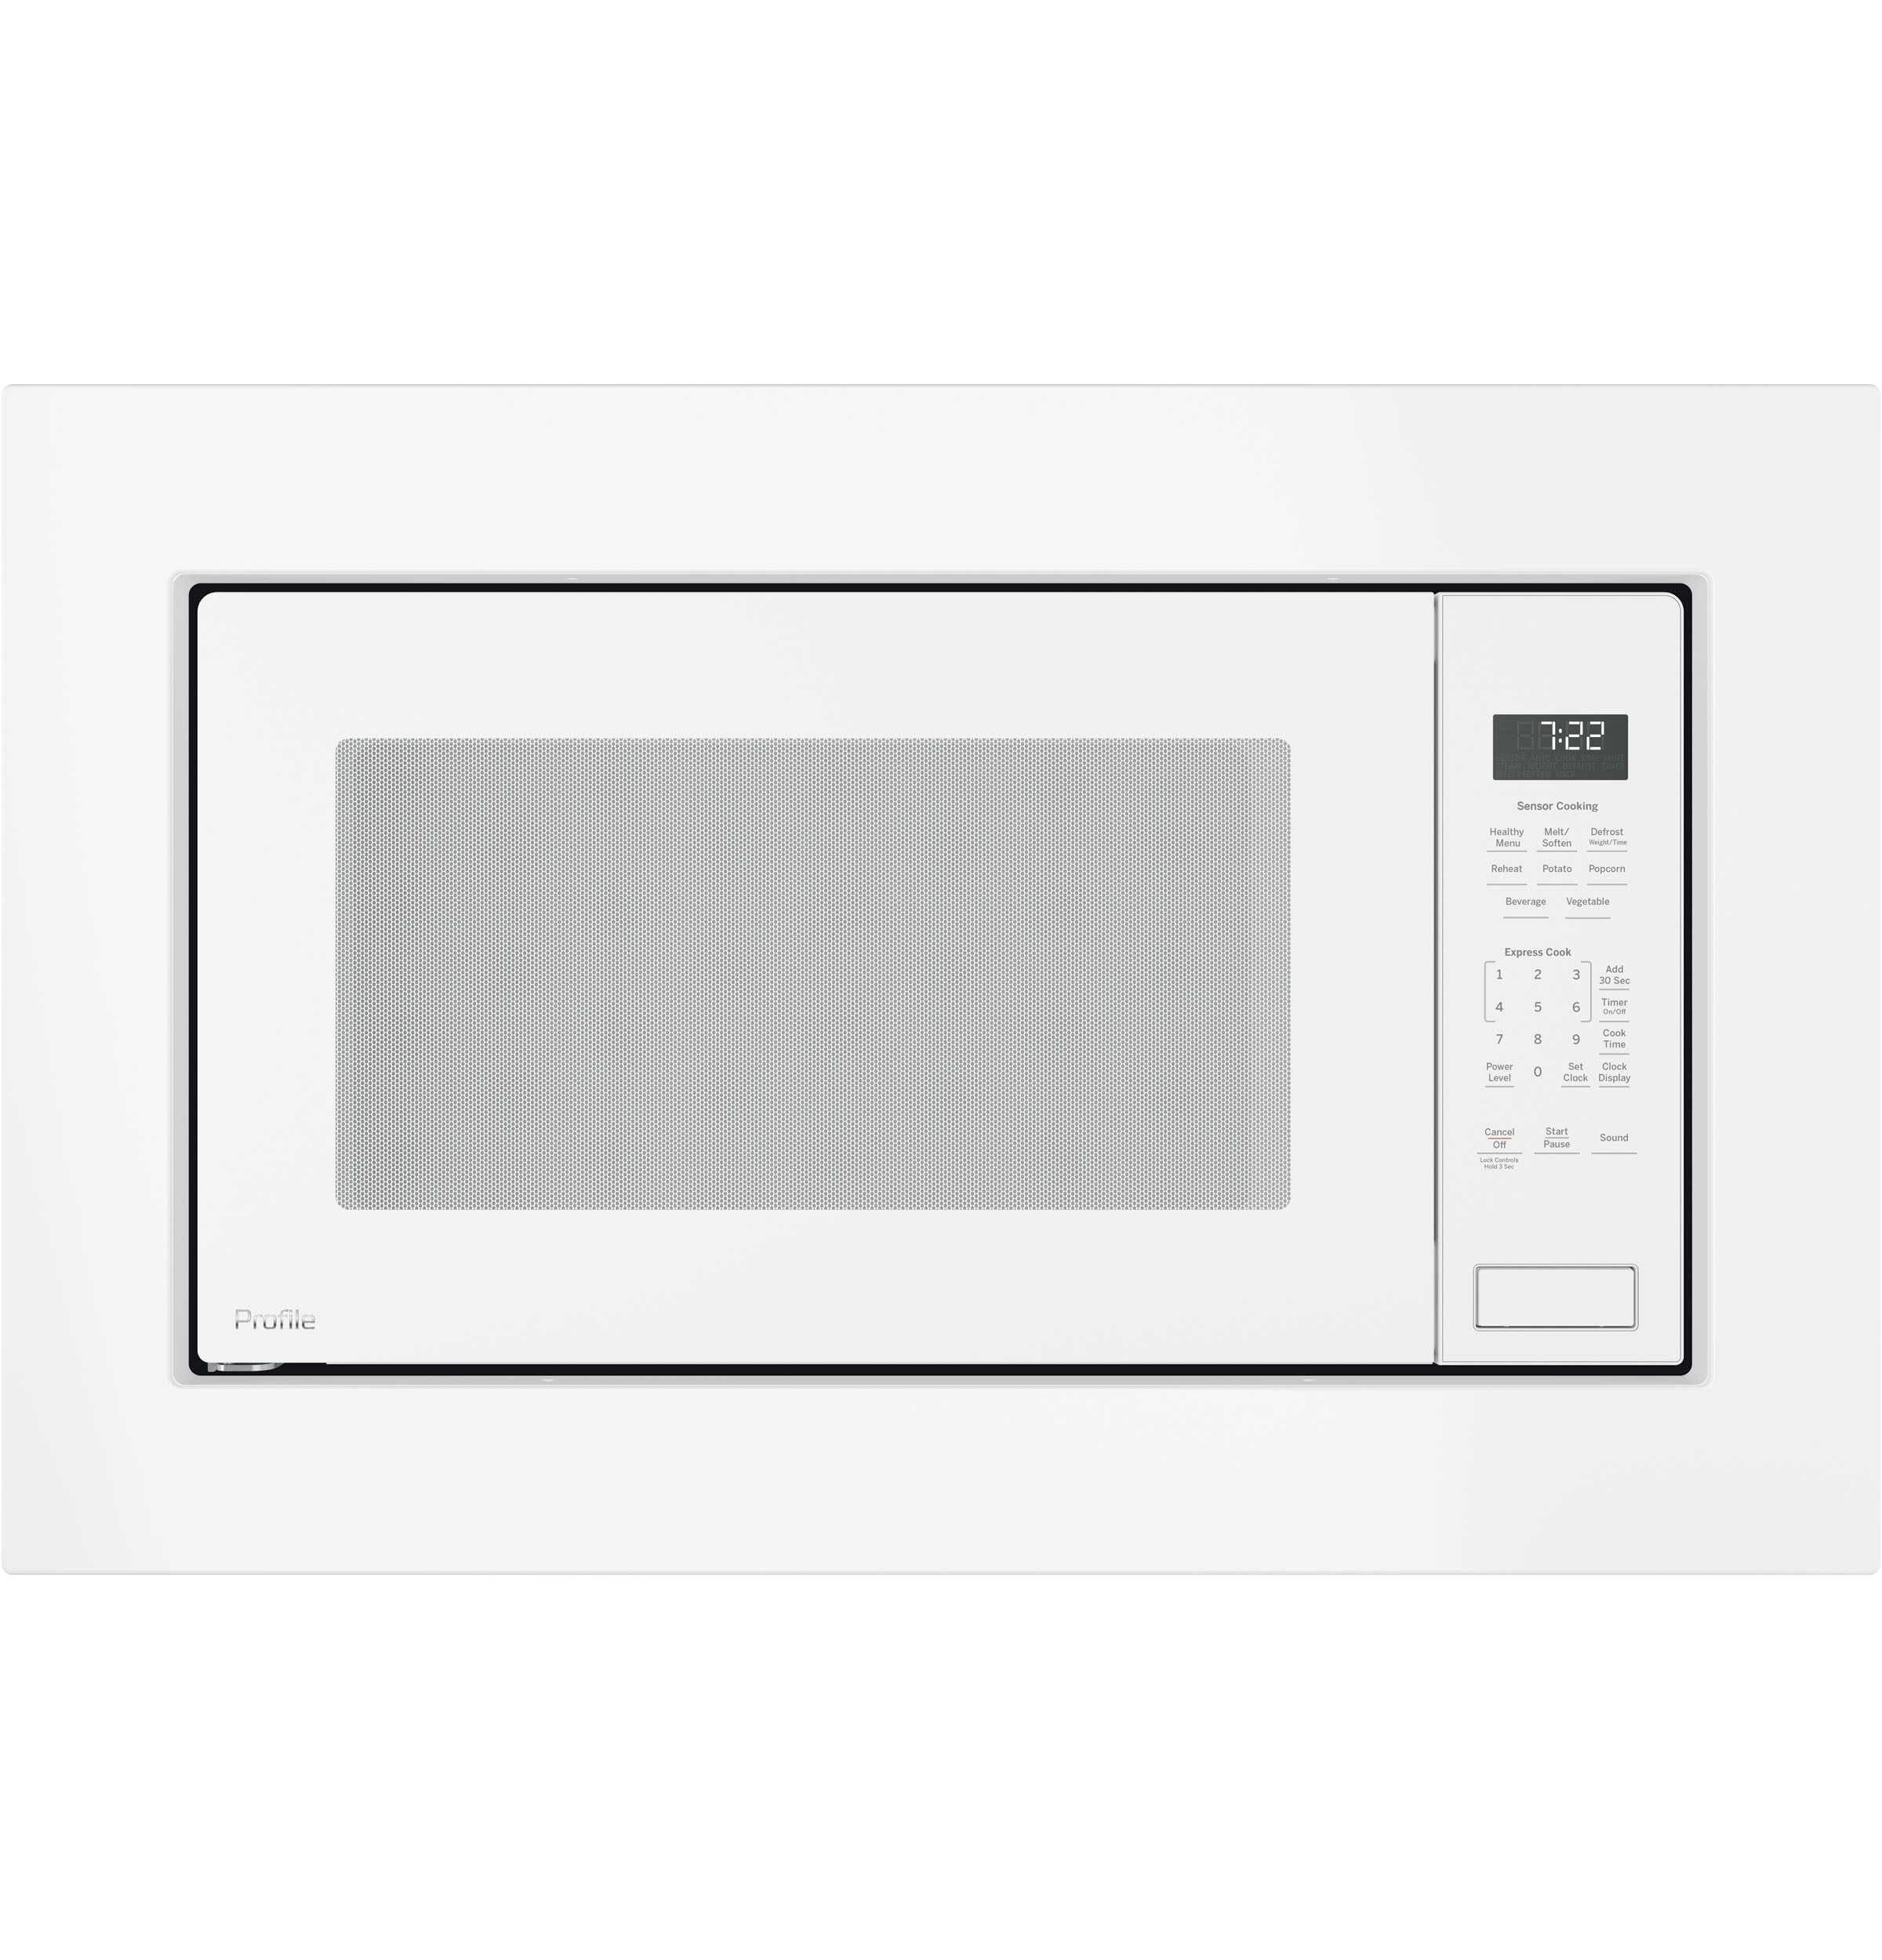 microwave charlotte appliance in rochester ny